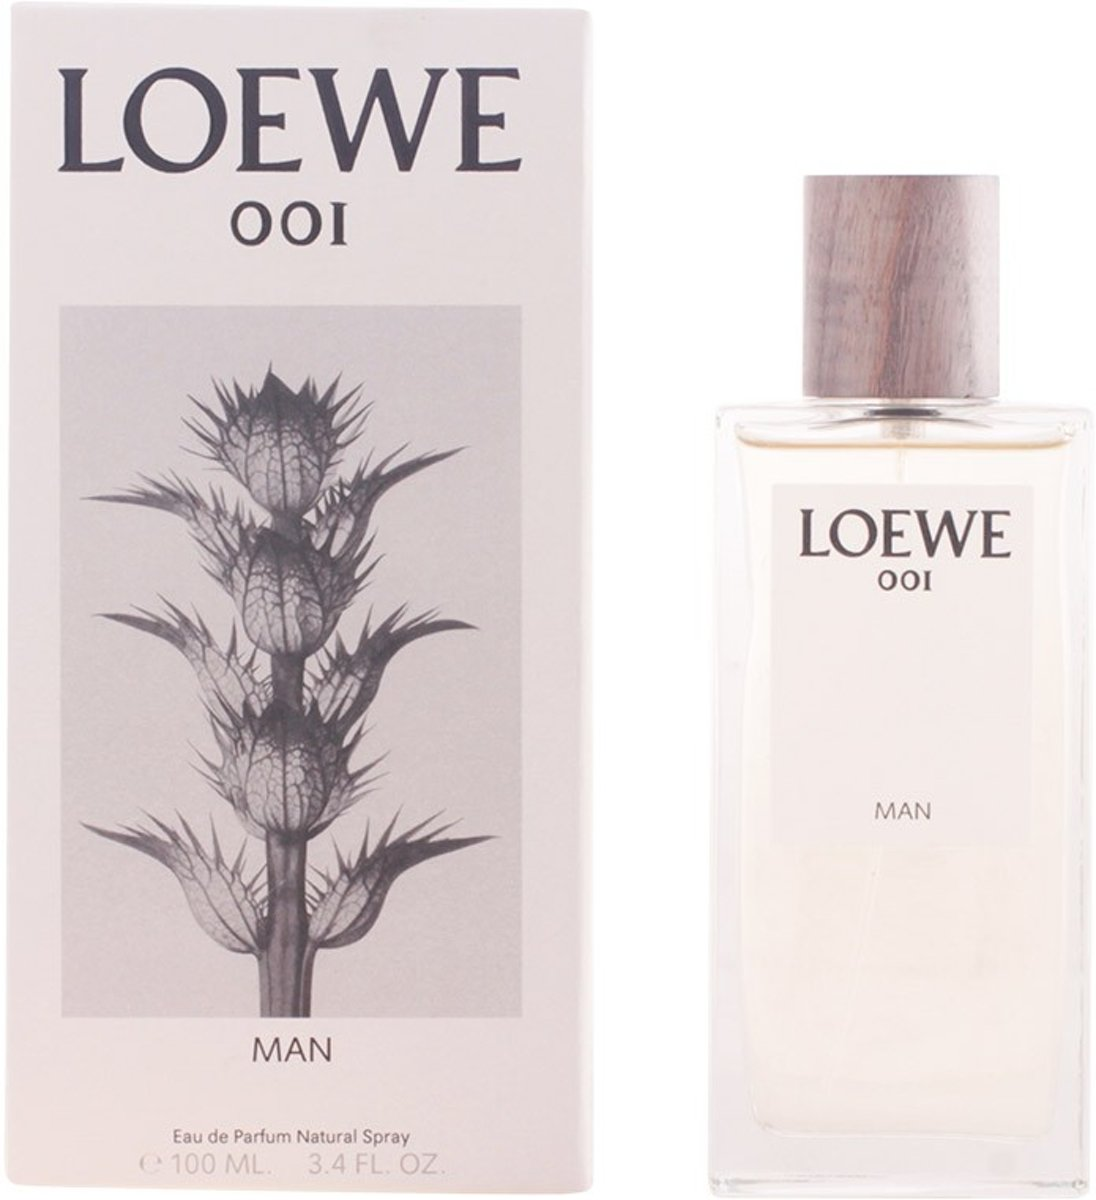 MULTI BUNDEL 2 stuks LOEWE 001 MAN Eau de Perfume Spray 100 ml